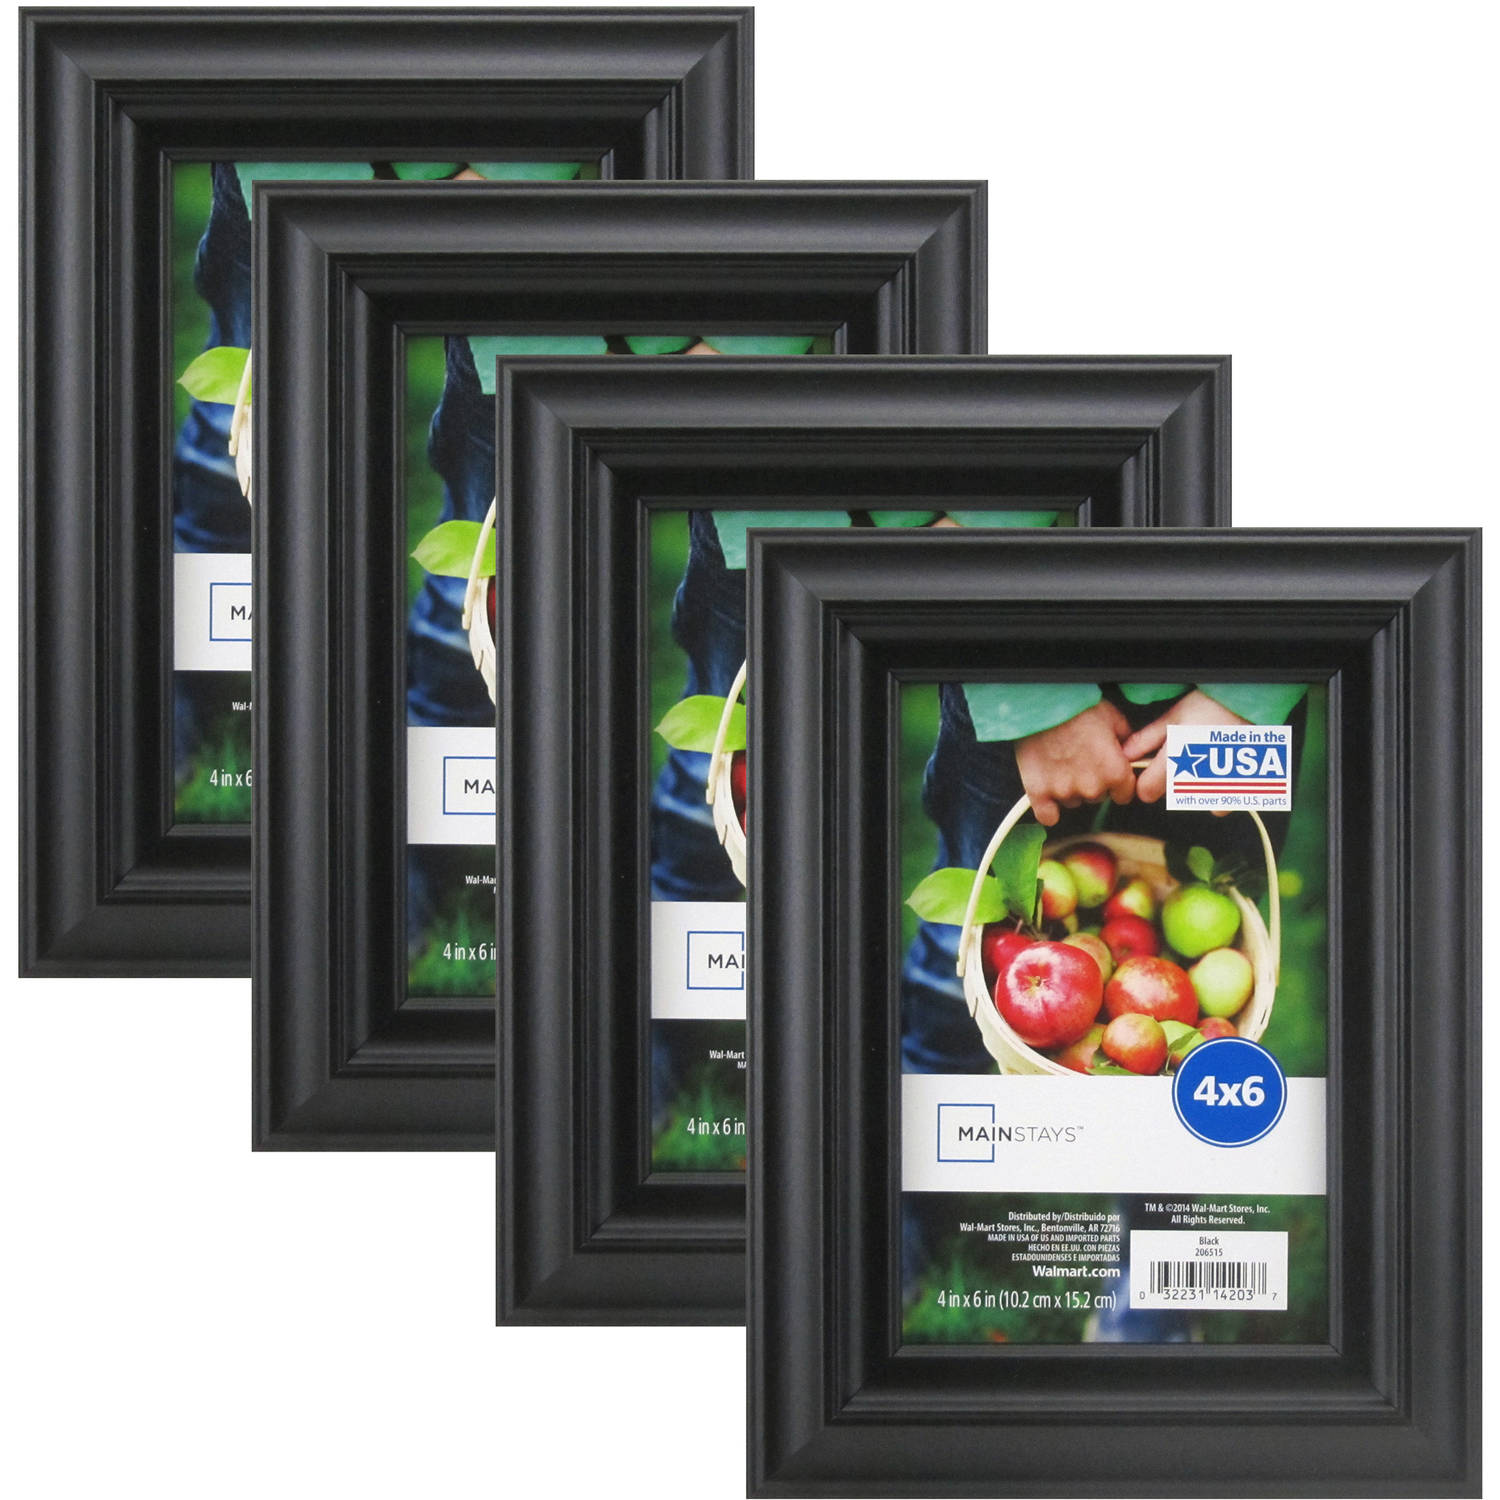 Mainstays Black Frame, Set of 4 - Multiple Sizes available